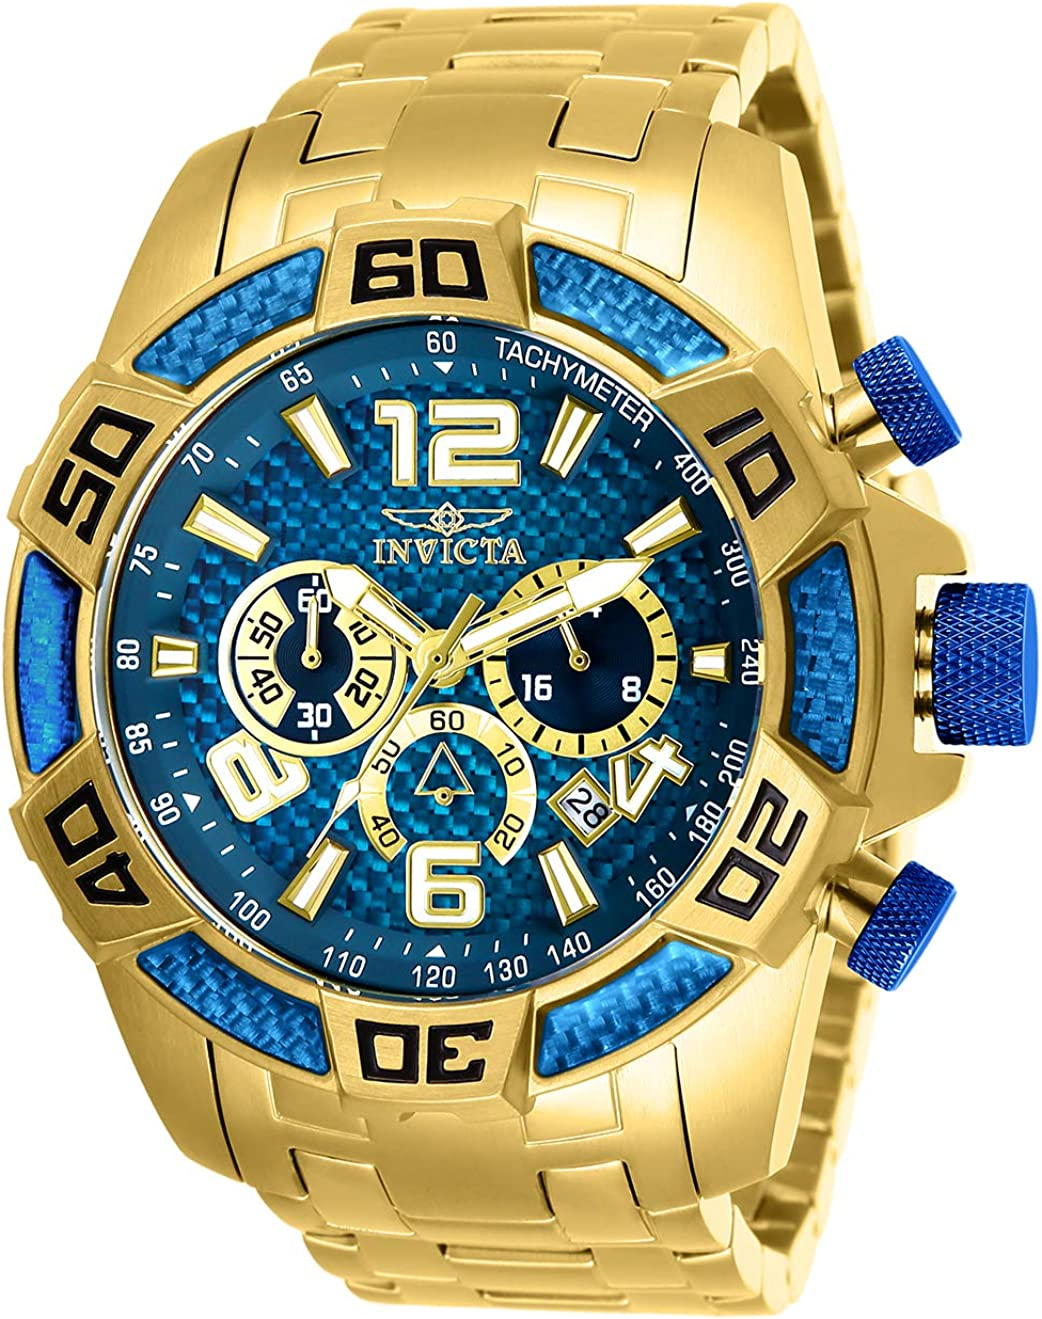 Invicta Men s Pro Diver Quartz Diving Watch with Stainless-Steel Strap, Gold, 26 Model 25852